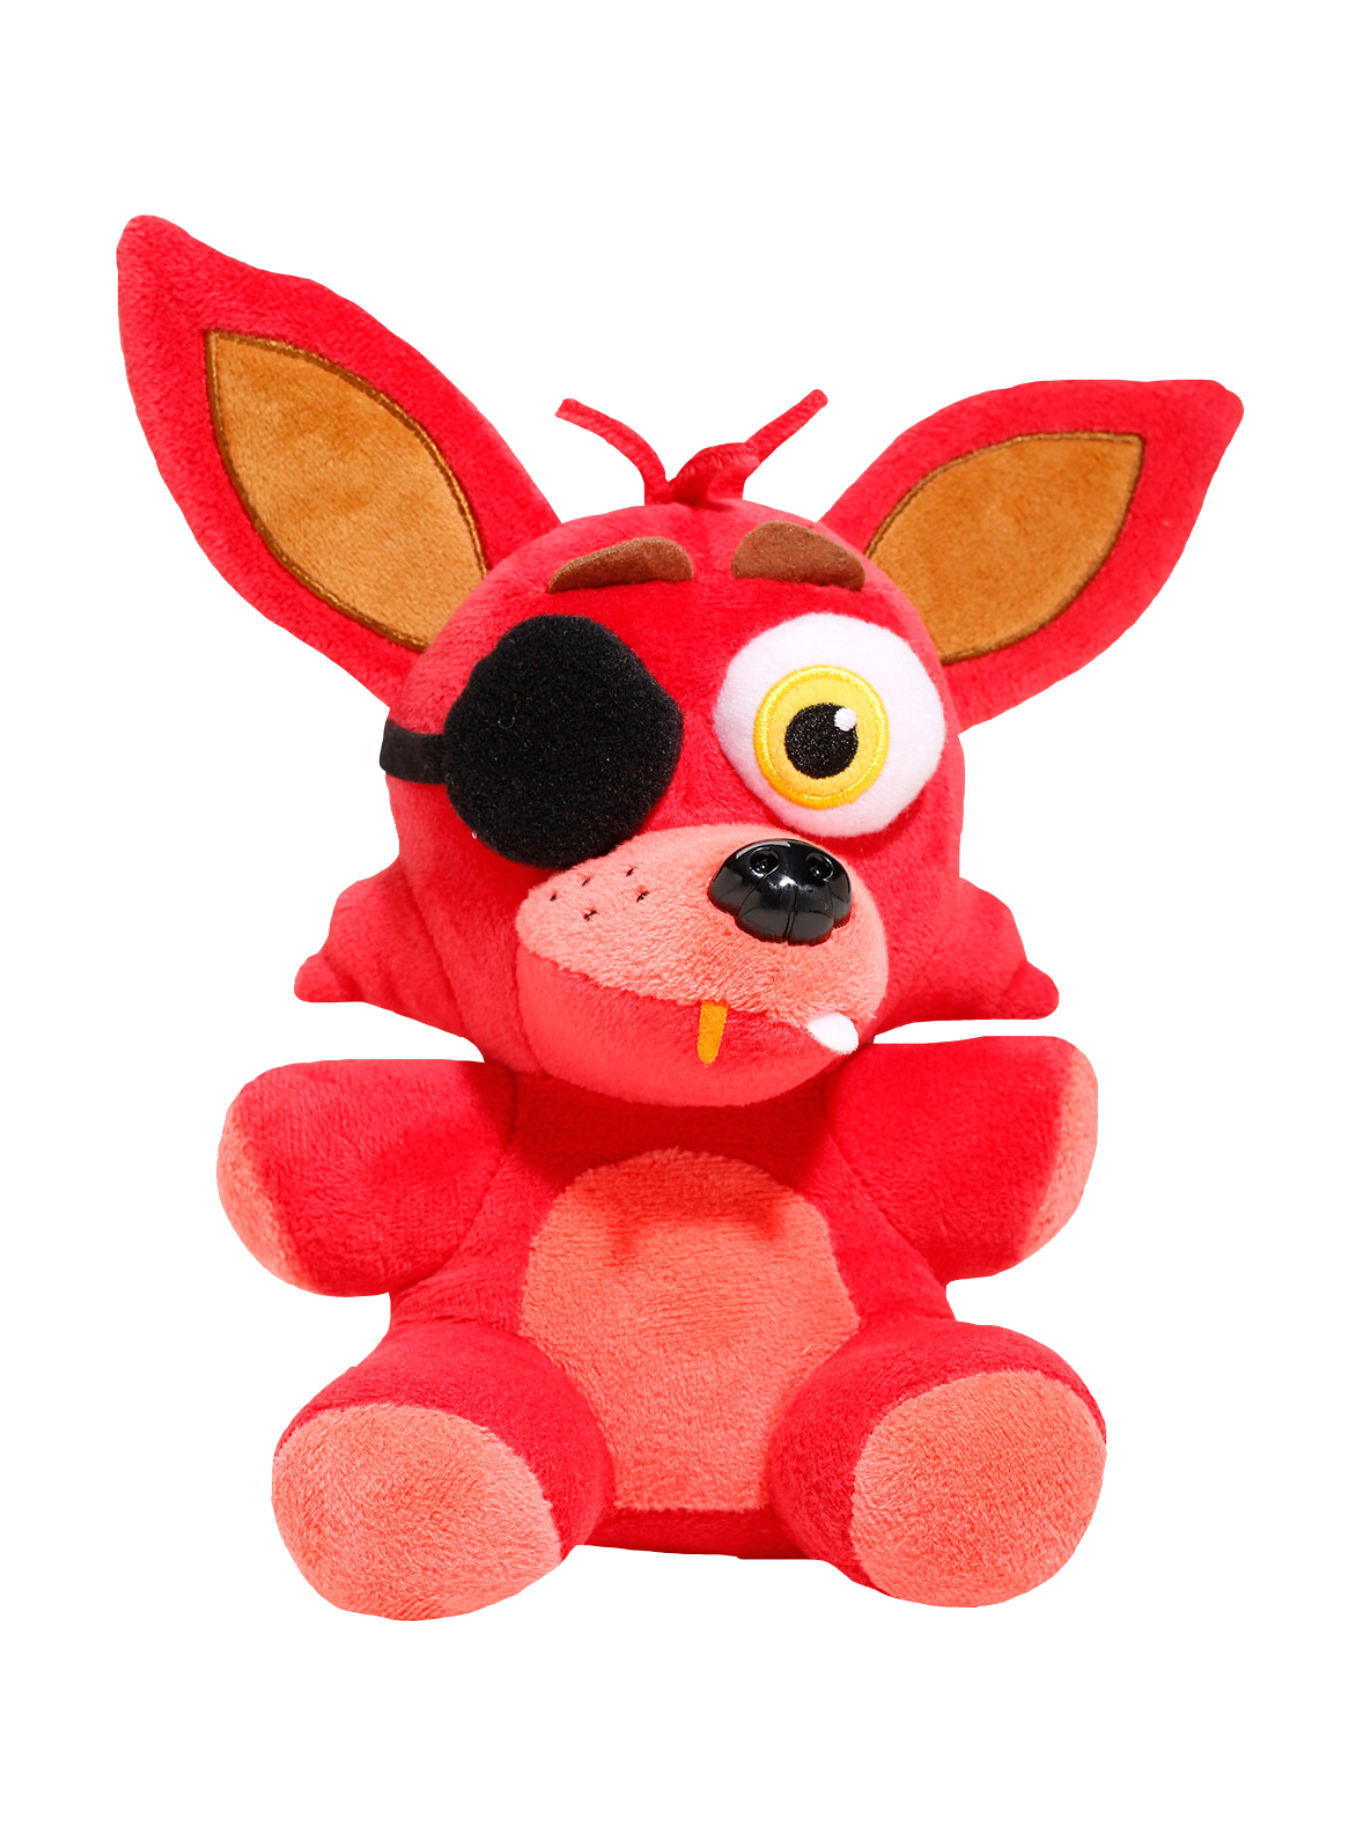 foxy transparent plush